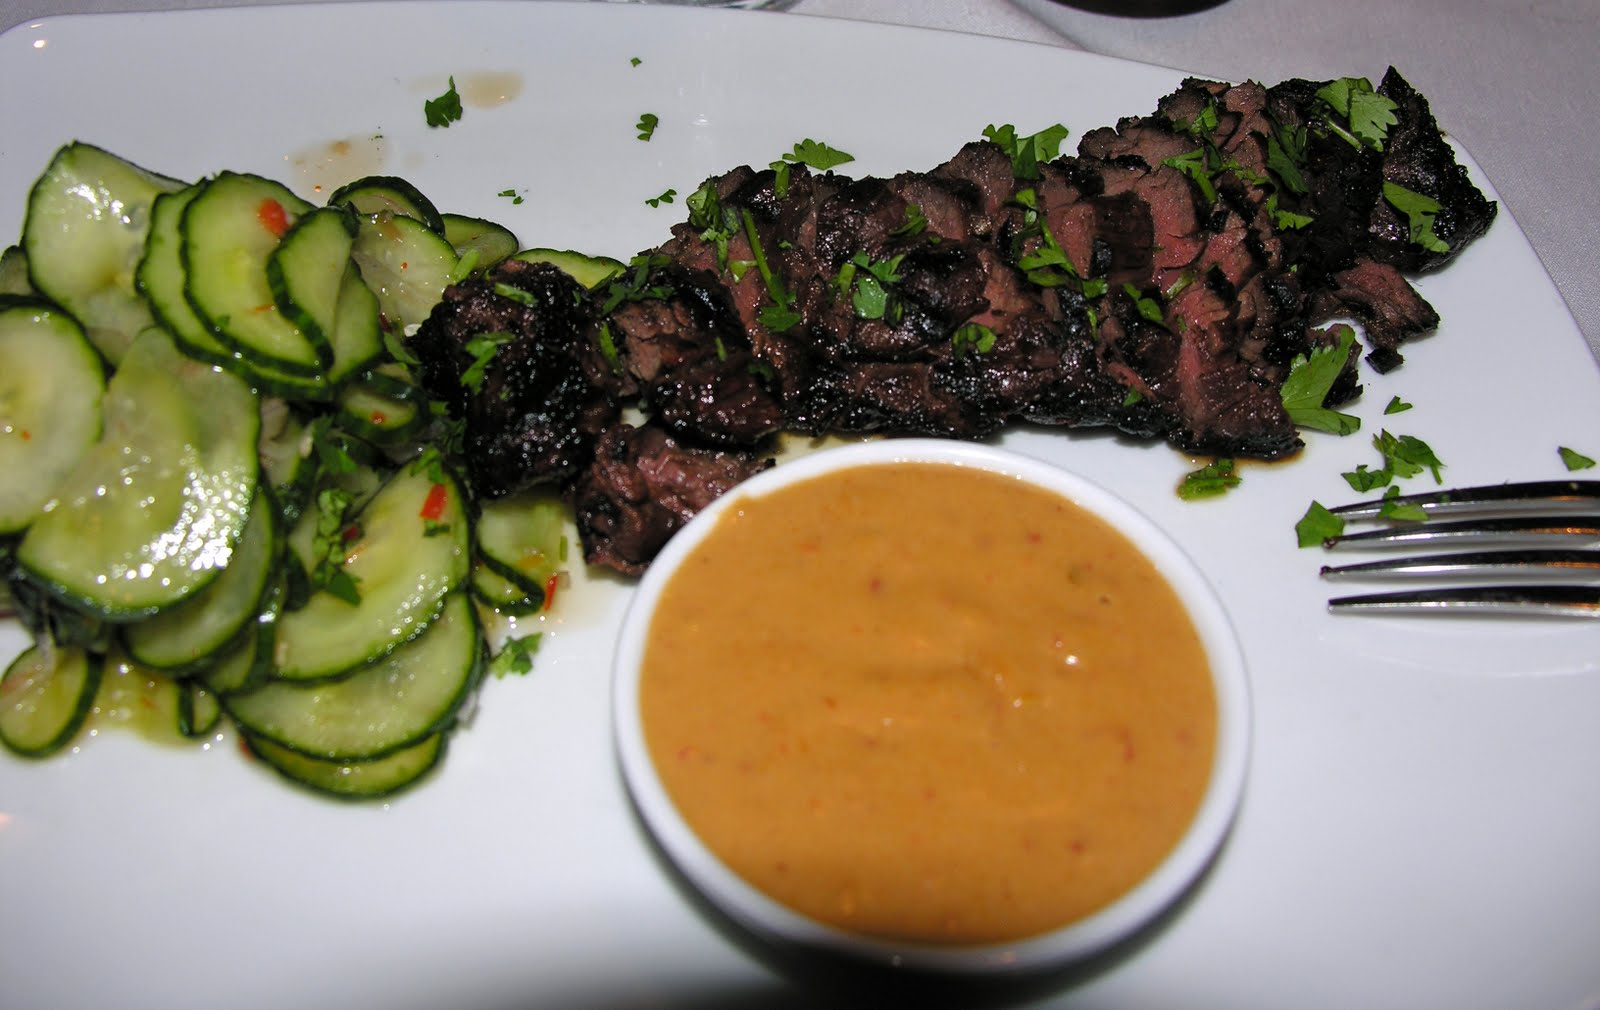 My hanger steak with cucumber salad and spicy peanut sauce.